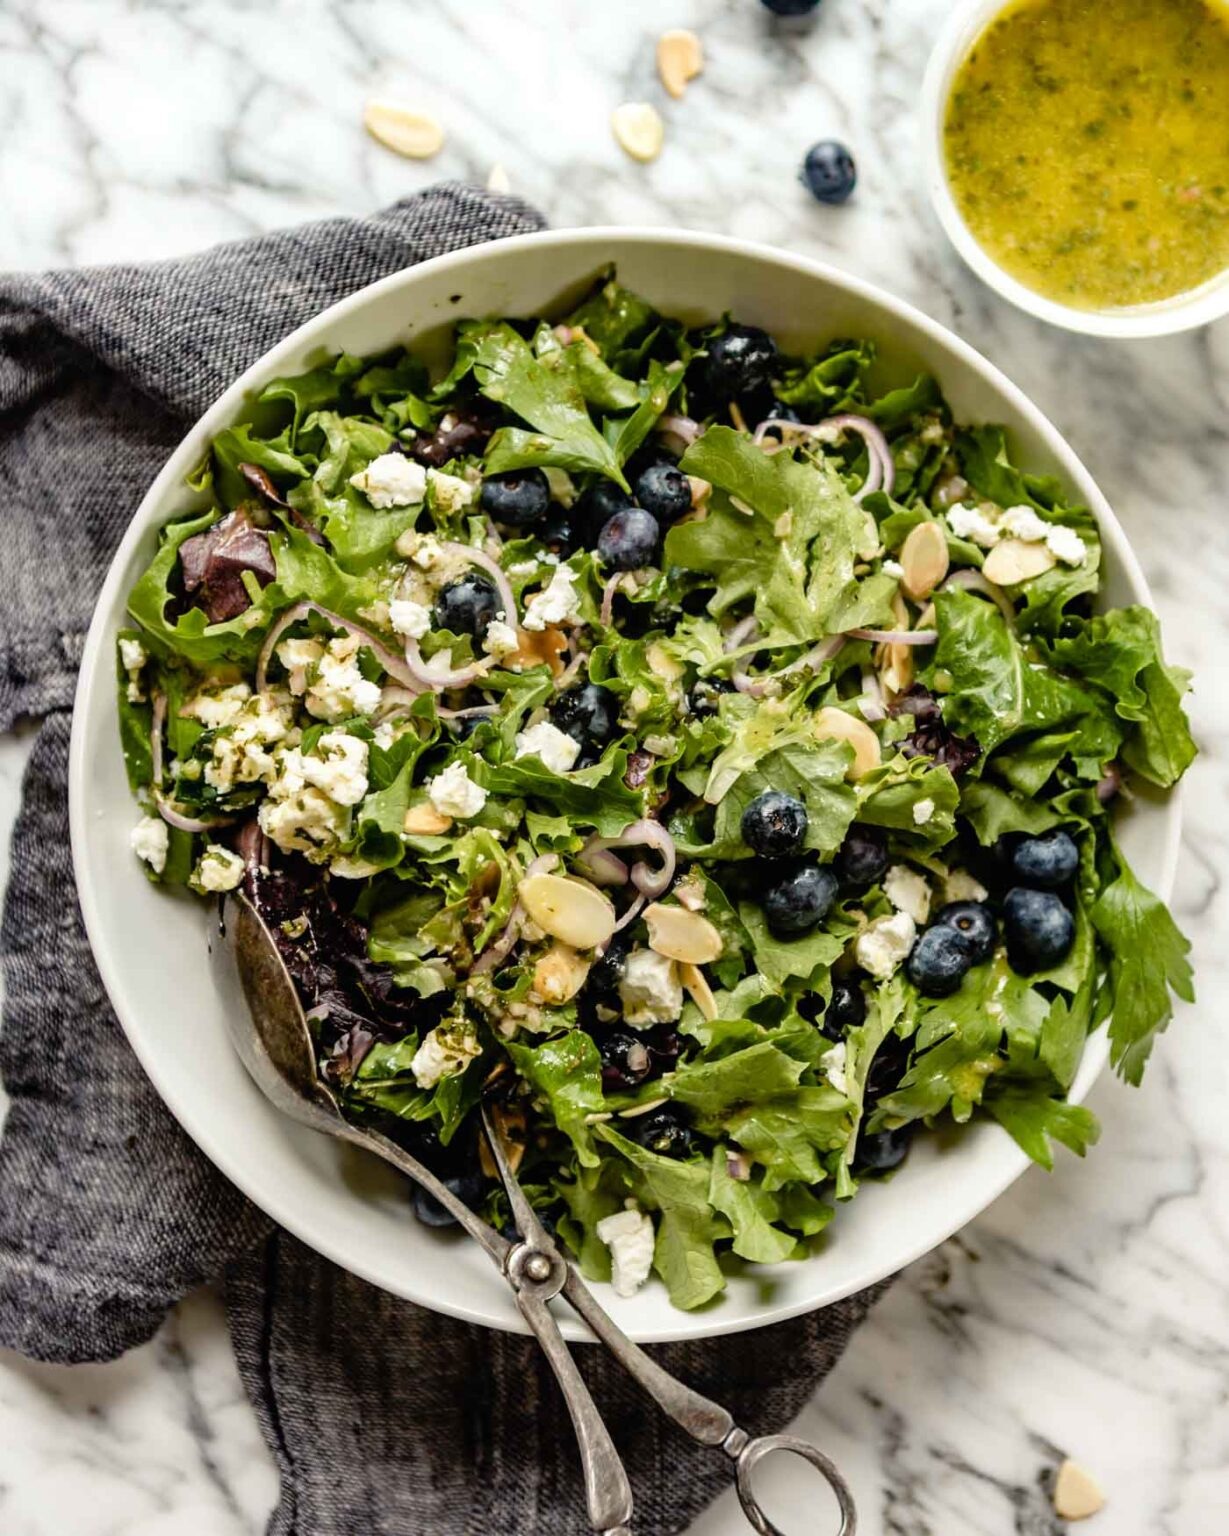 image of a green salad in a large white bowl topped with blueberries, almonds, cheese and sliced shallots